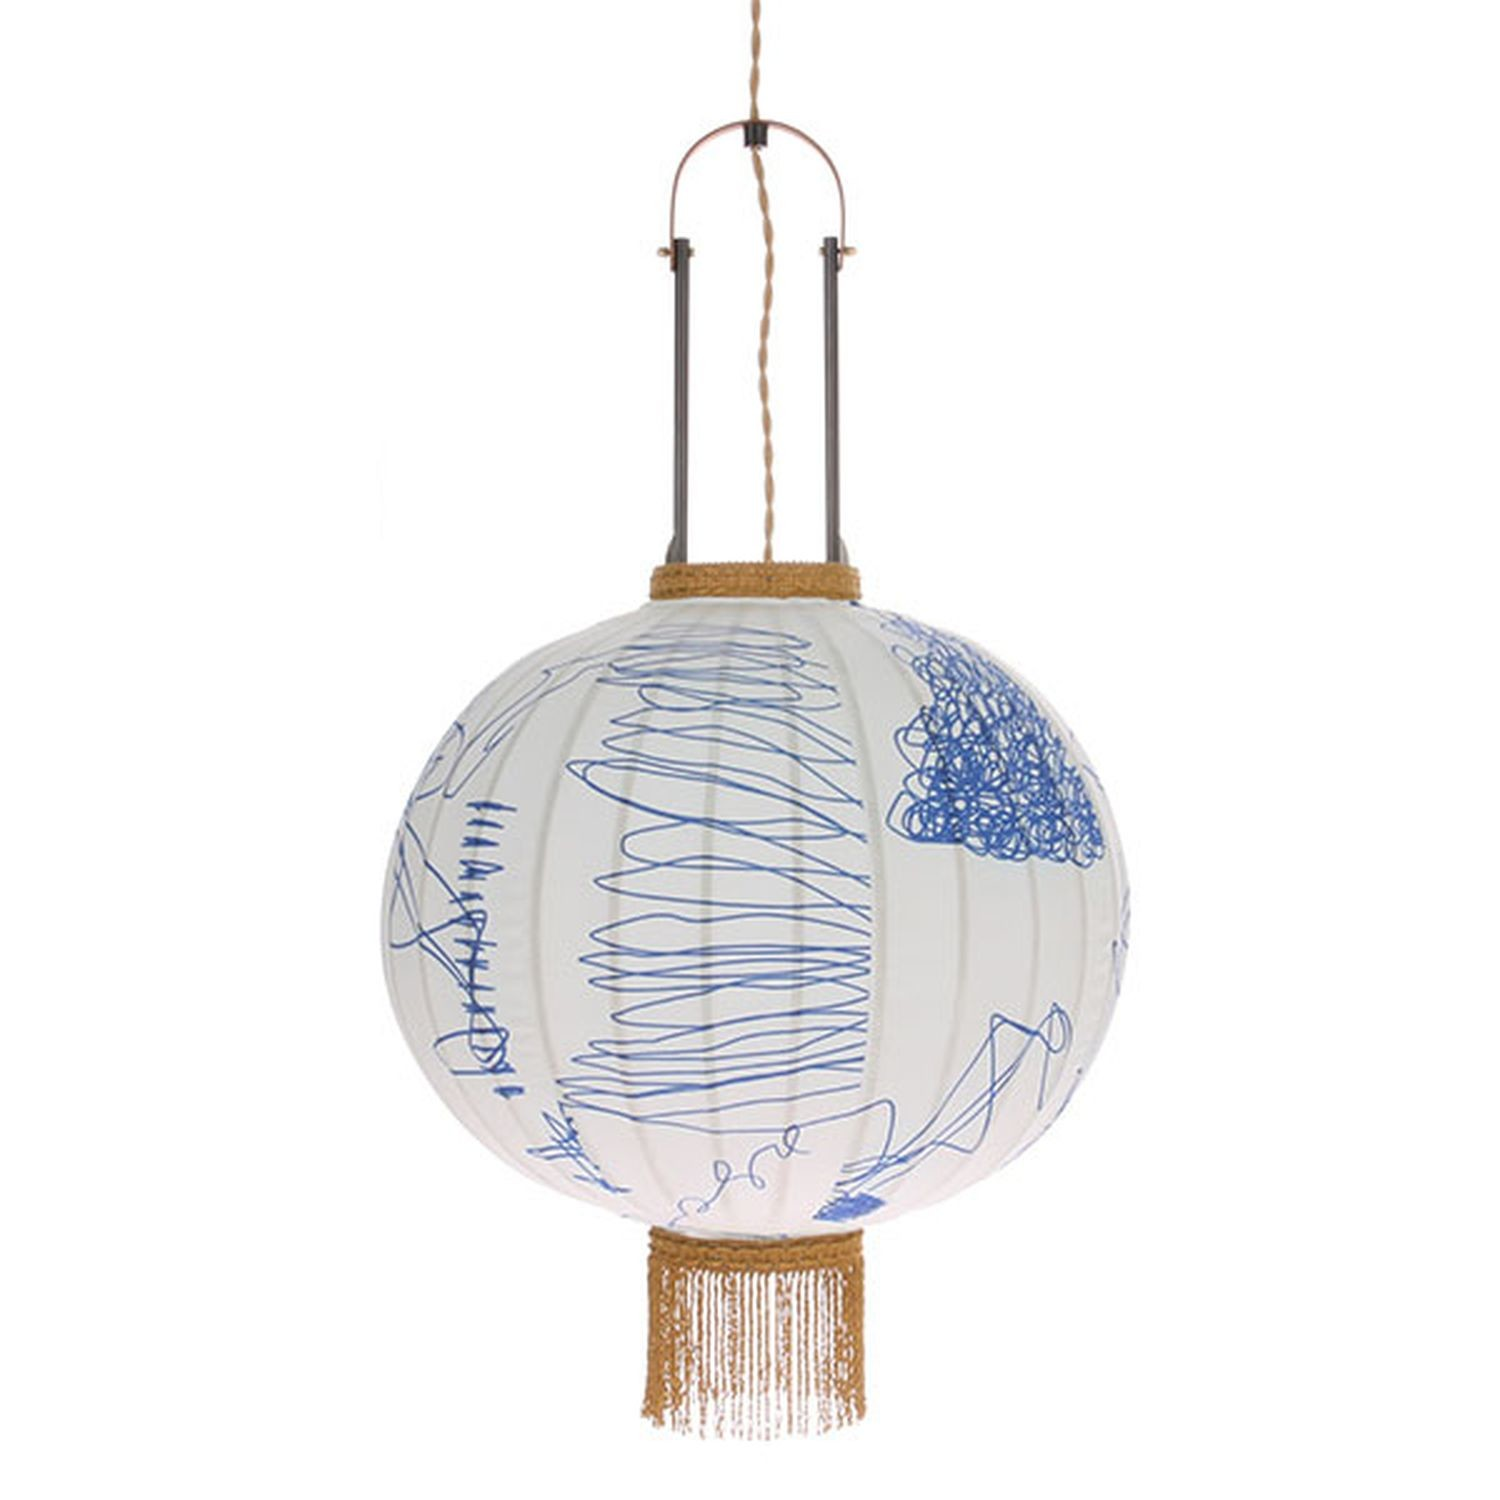 HK LIVING traditional lantern pencil M Laternenlampe